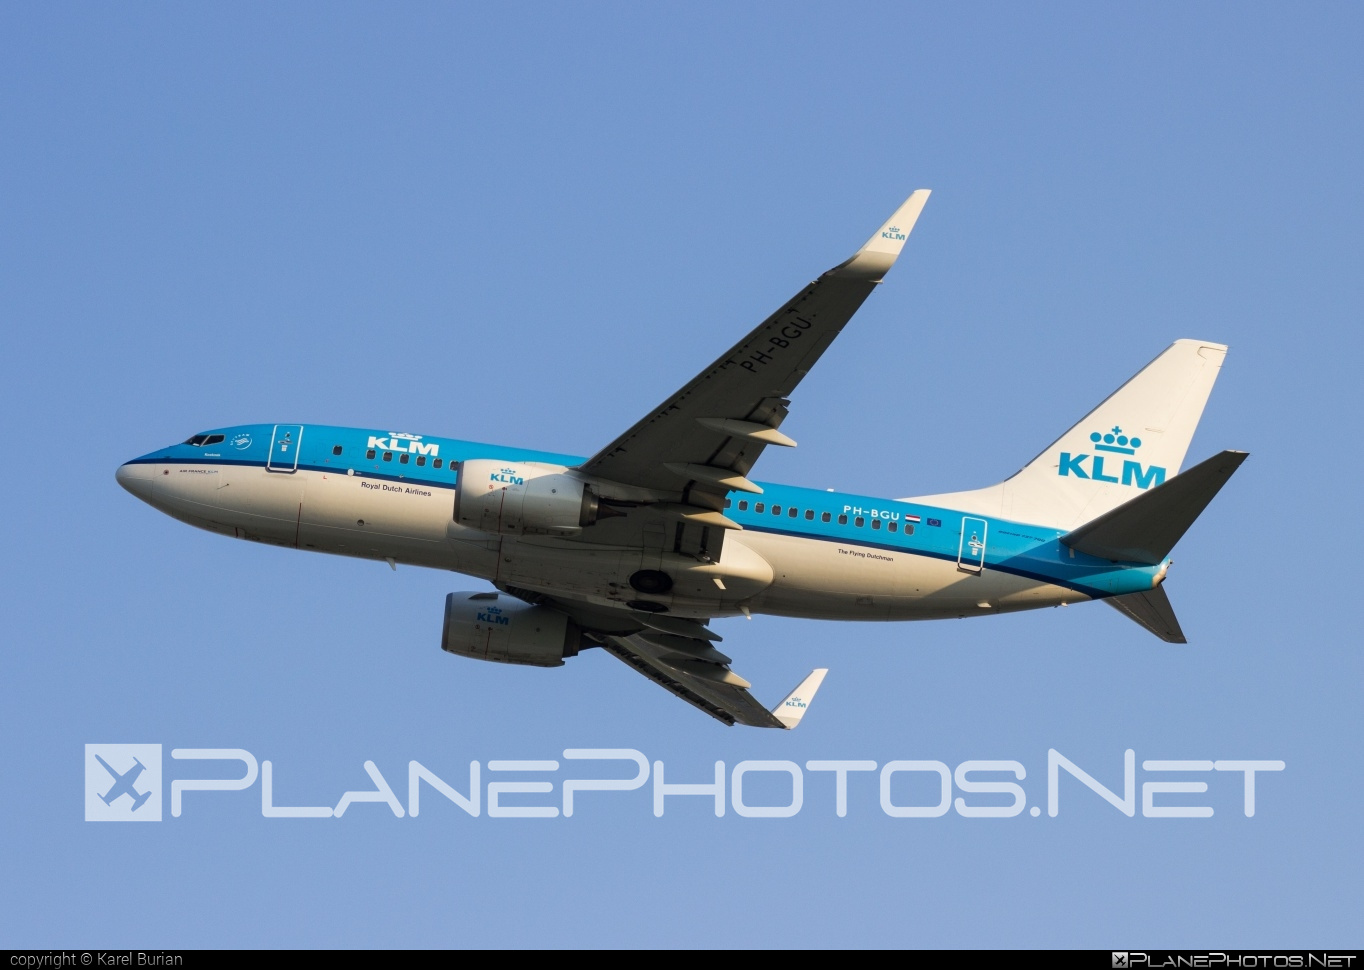 Boeing 737-700 - PH-BGU operated by KLM Royal Dutch Airlines #b737 #b737nextgen #b737ng #boeing #boeing737 #klm #klmroyaldutchairlines #royaldutchairlines